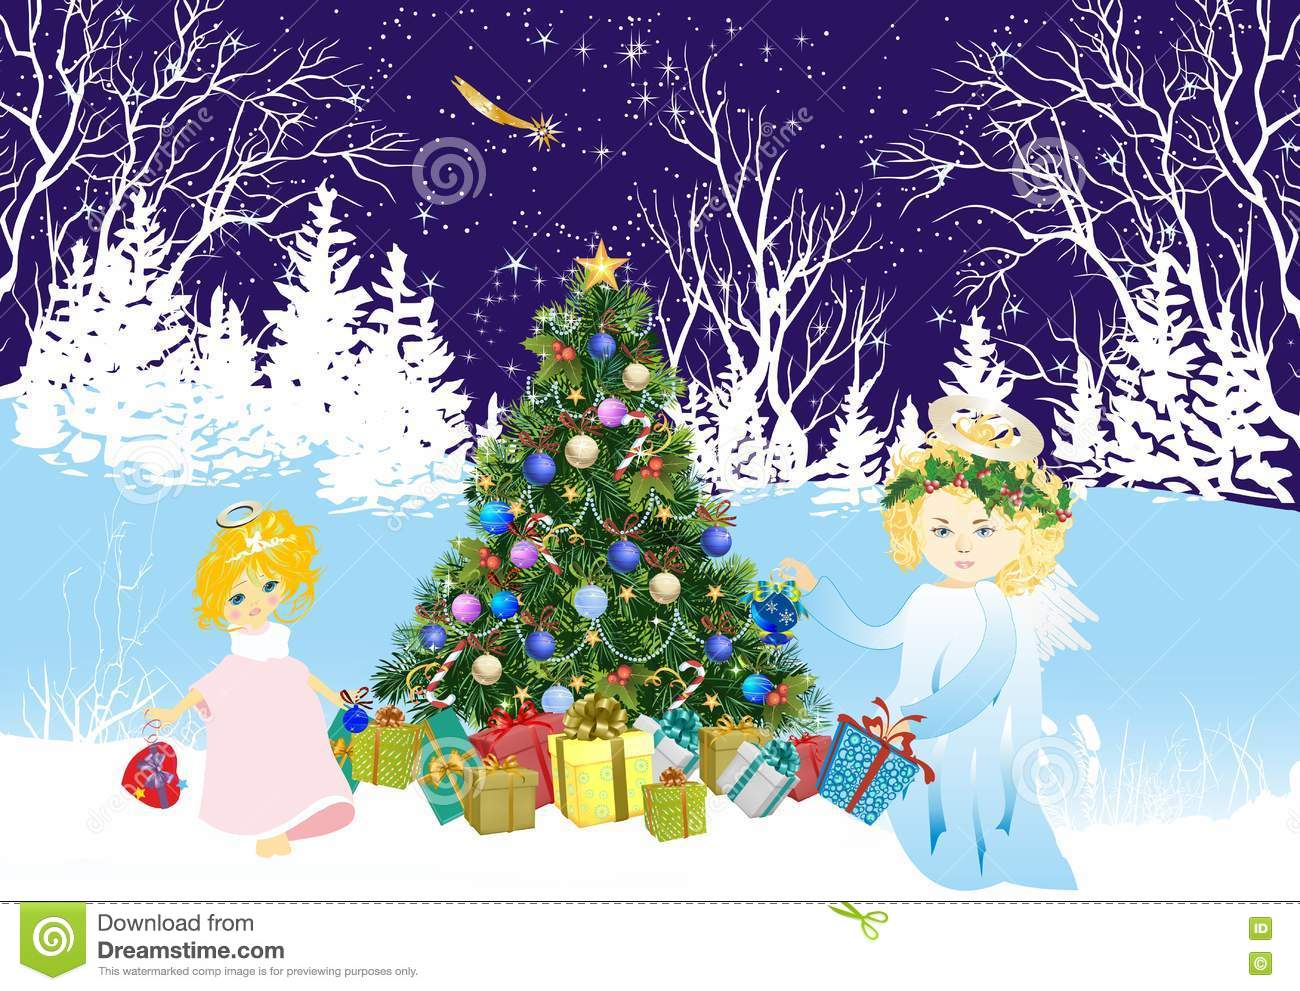 Angels Christmas Background.Christmas Background With Angels And Christmas Tree Stock